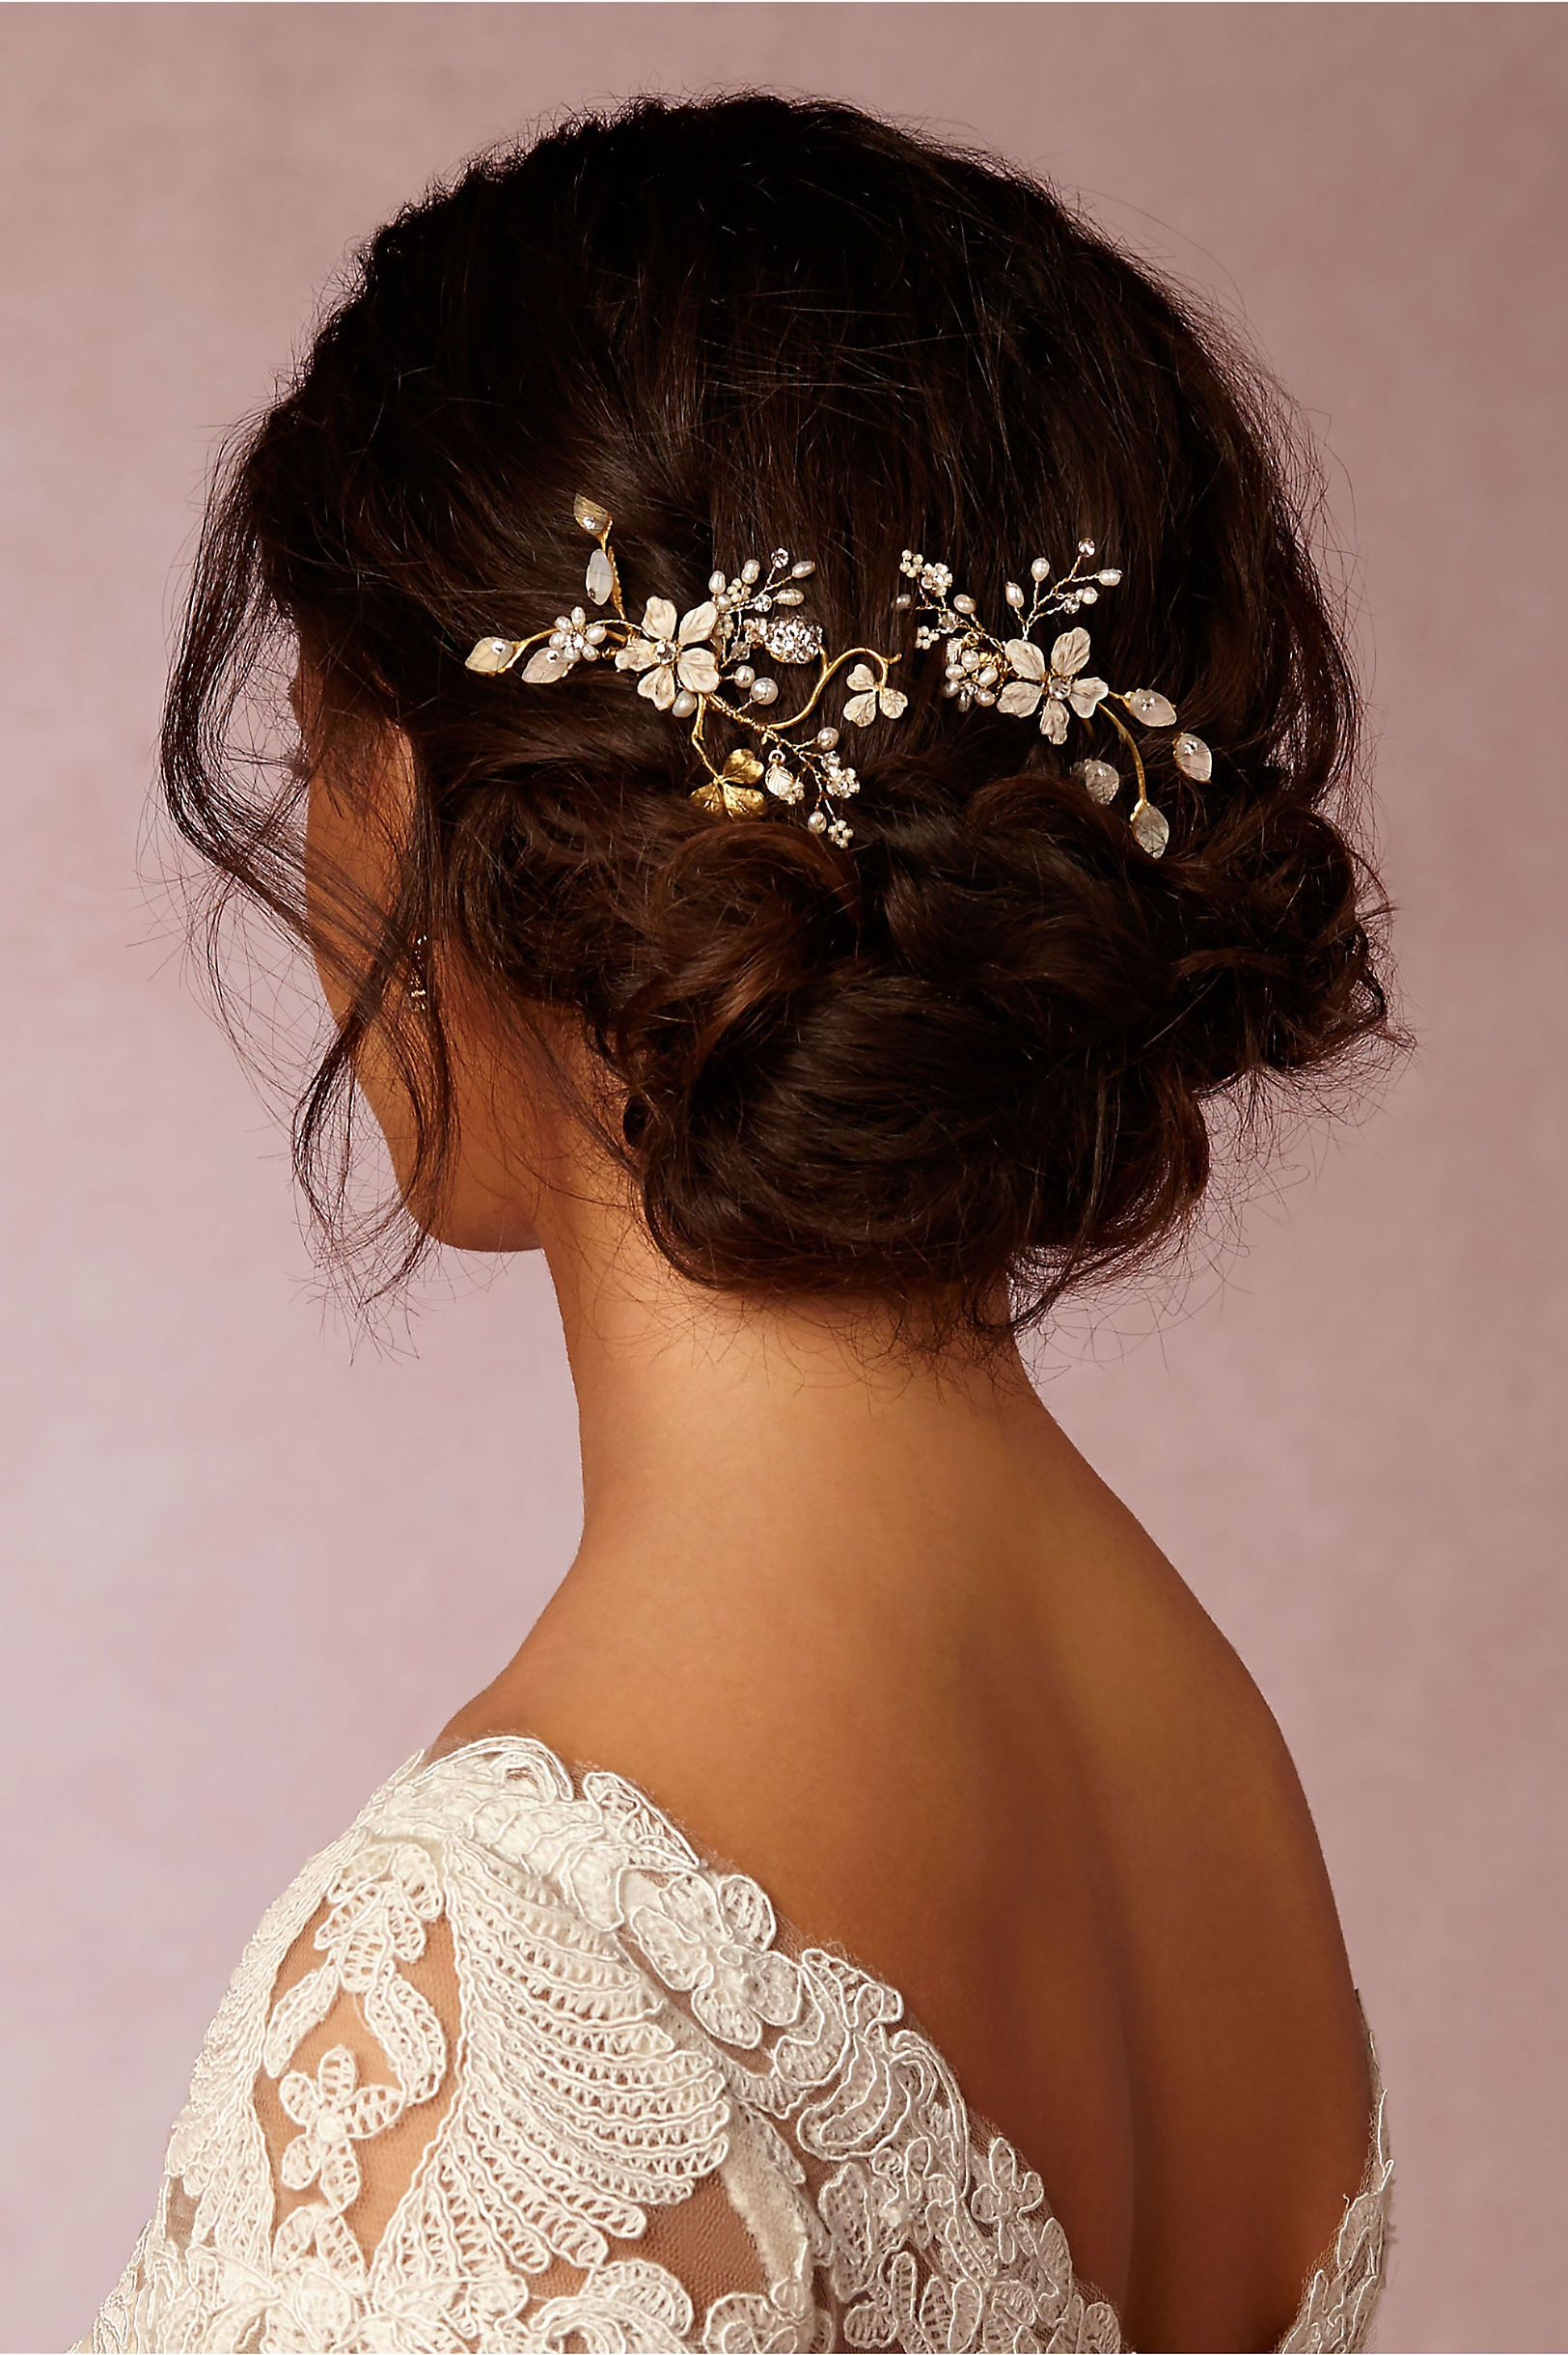 bhldn winter garden combs in bride veils & headpieces pins, clips